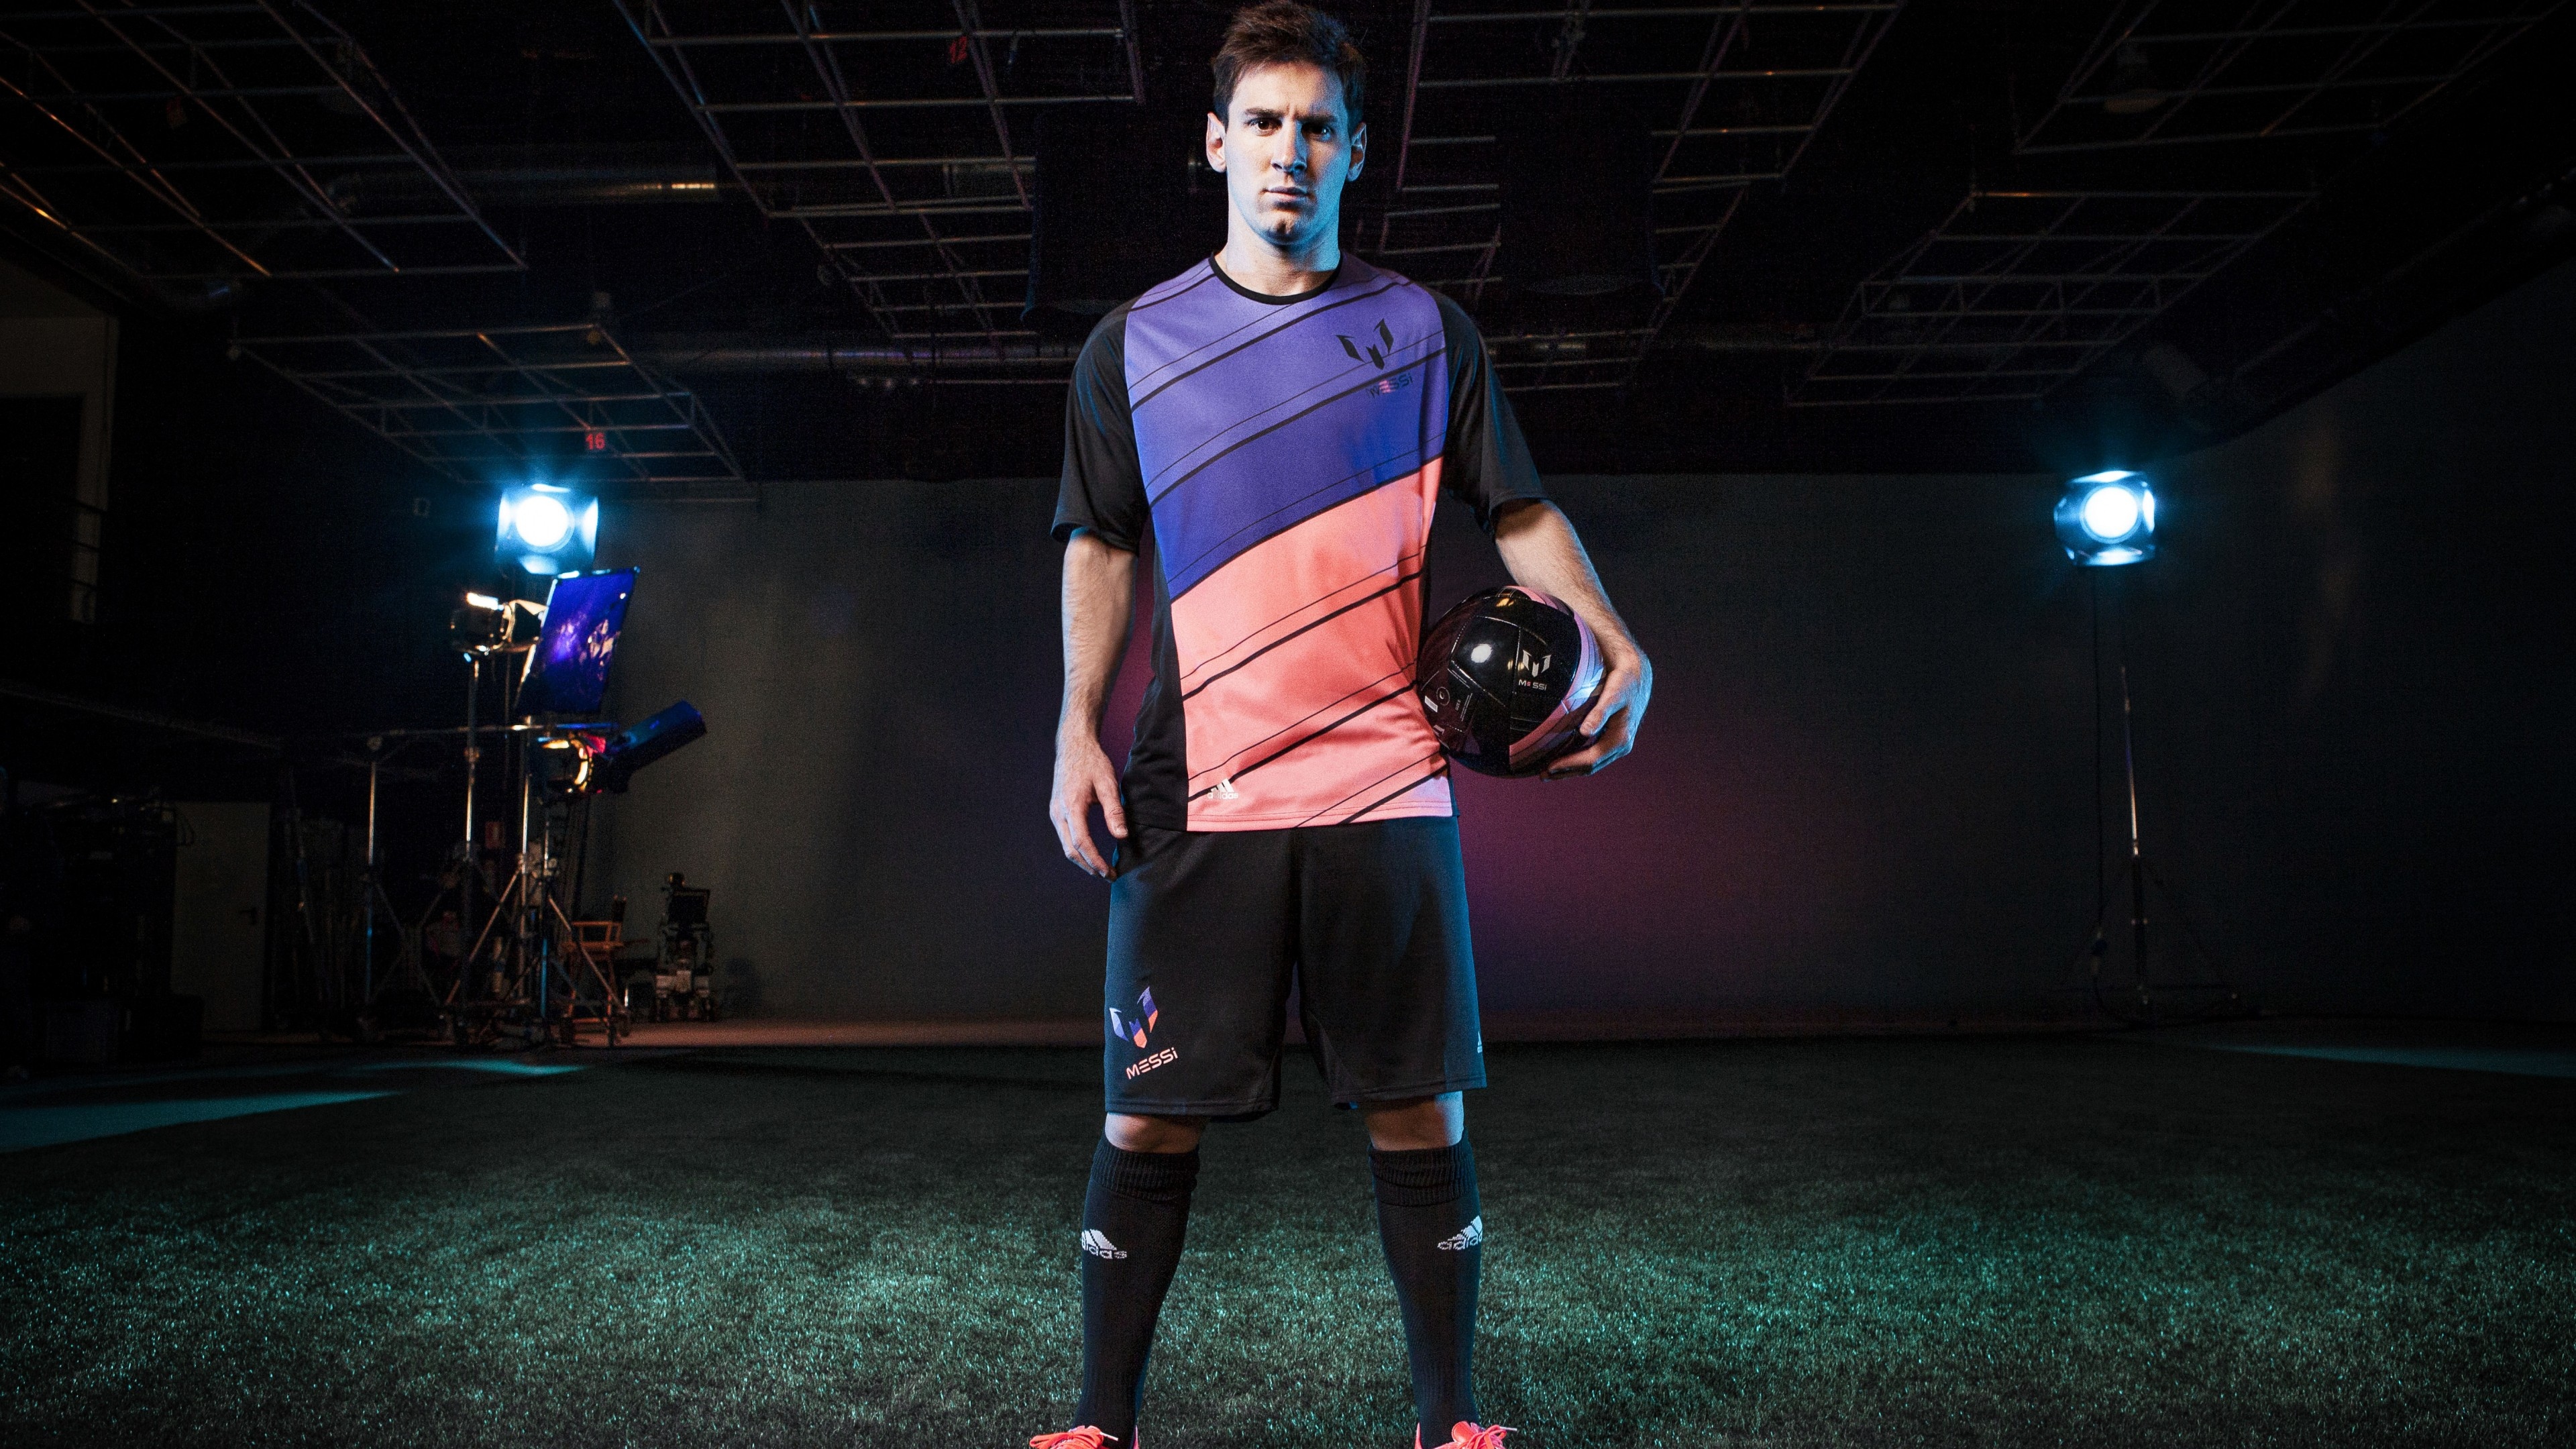 2016 Lionel Messi Hd Sports 4k Wallpapers Images